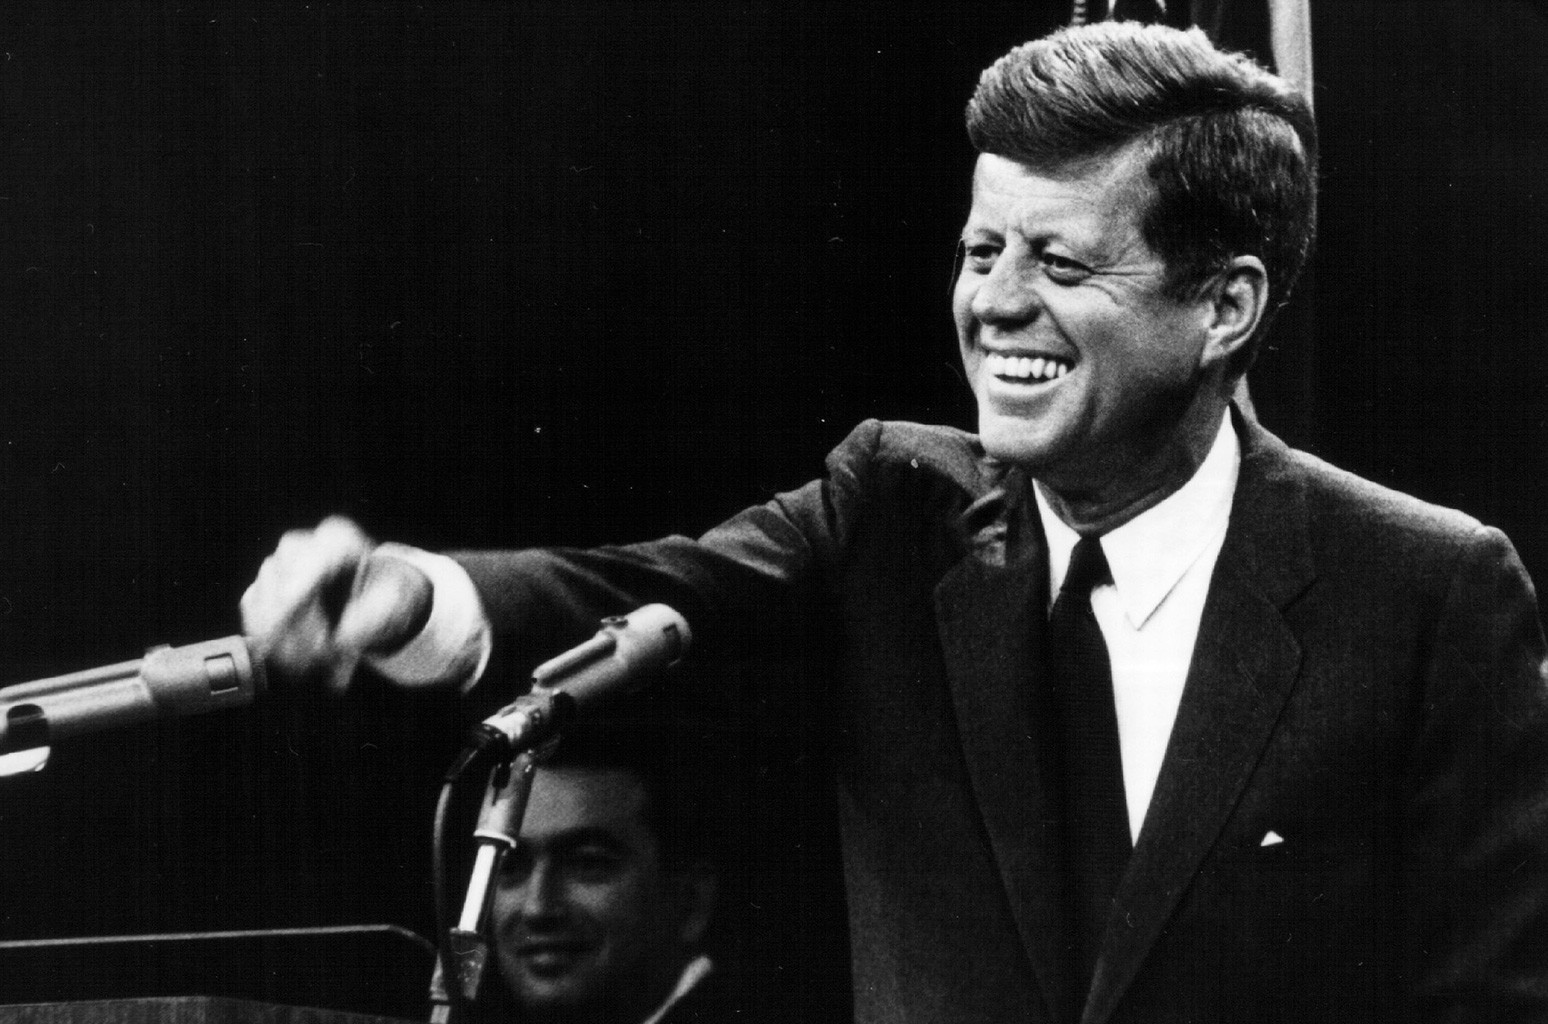 John F. Kennedy laughs during a press conference Aug. 9, 1963.